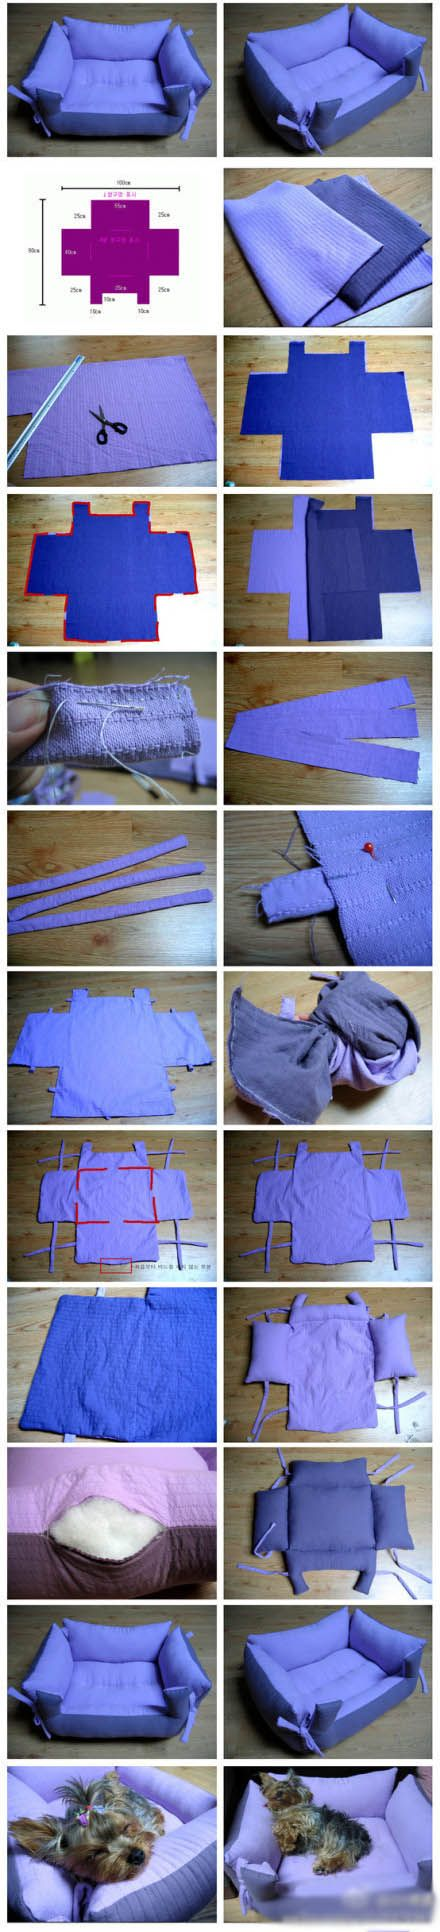 diy pet bed purple diy crafts do it yourself diy projects crafty pet bed diy pet bed re. Black Bedroom Furniture Sets. Home Design Ideas